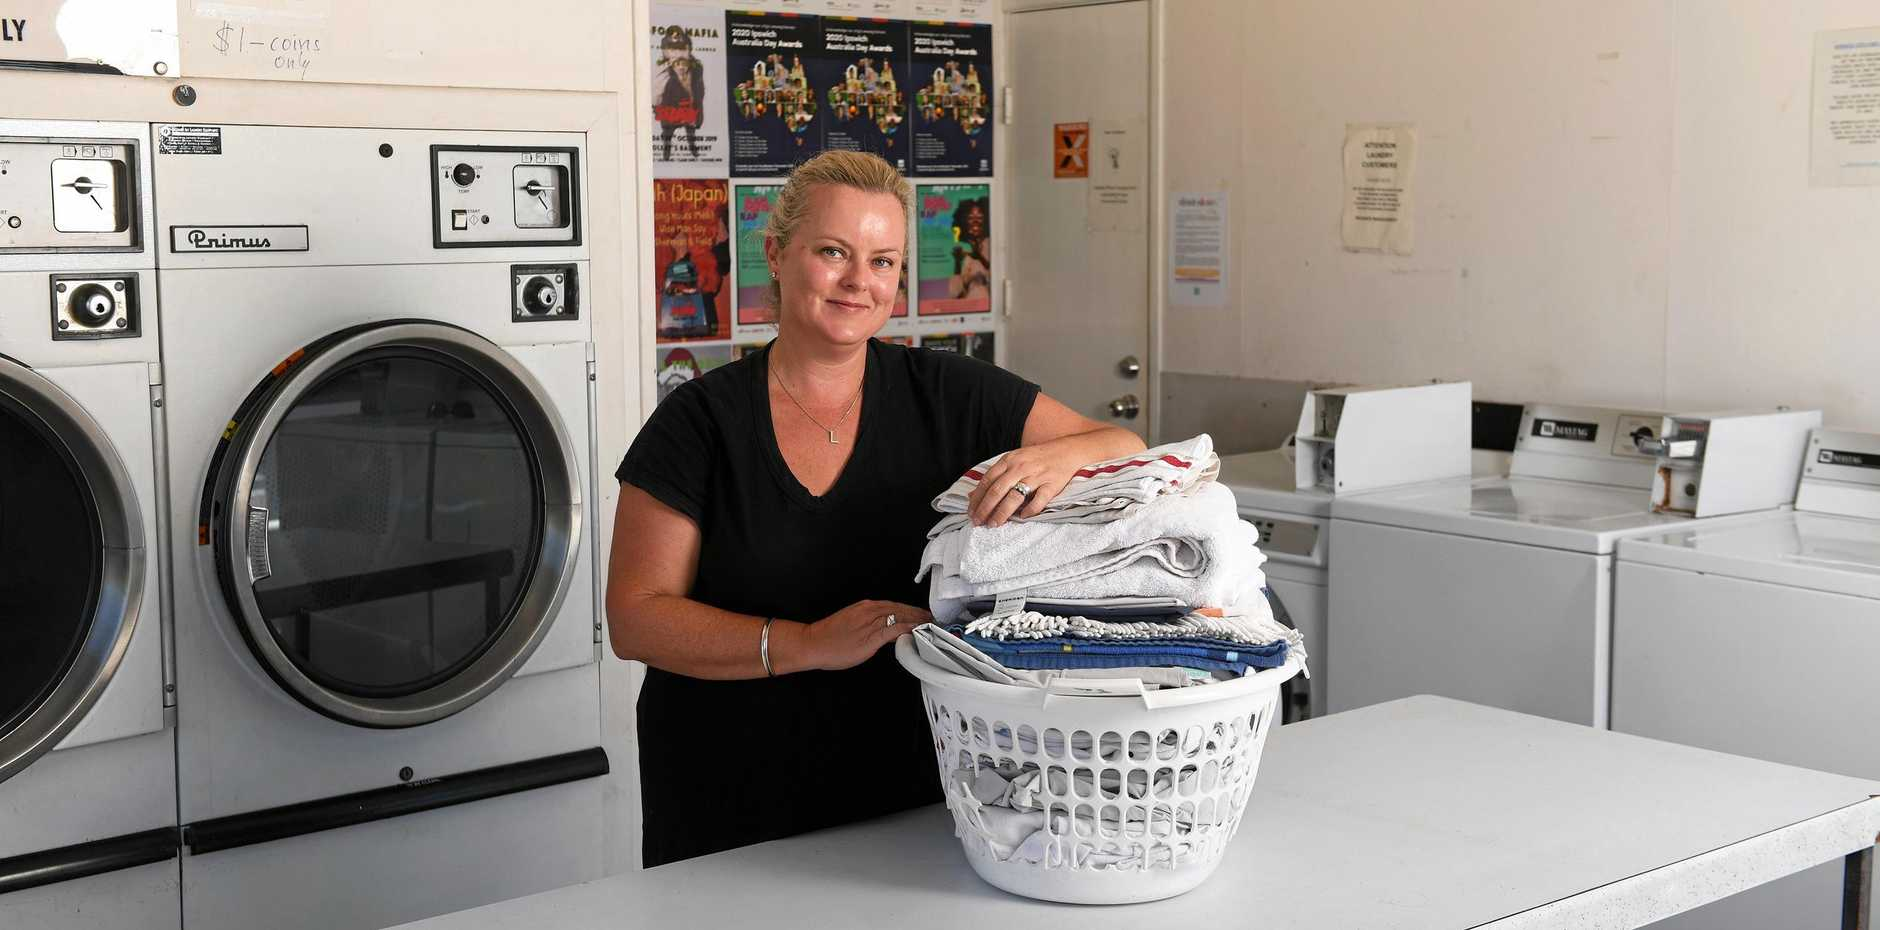 Ipswich Dry Cleaners owner Libby Rawlings.